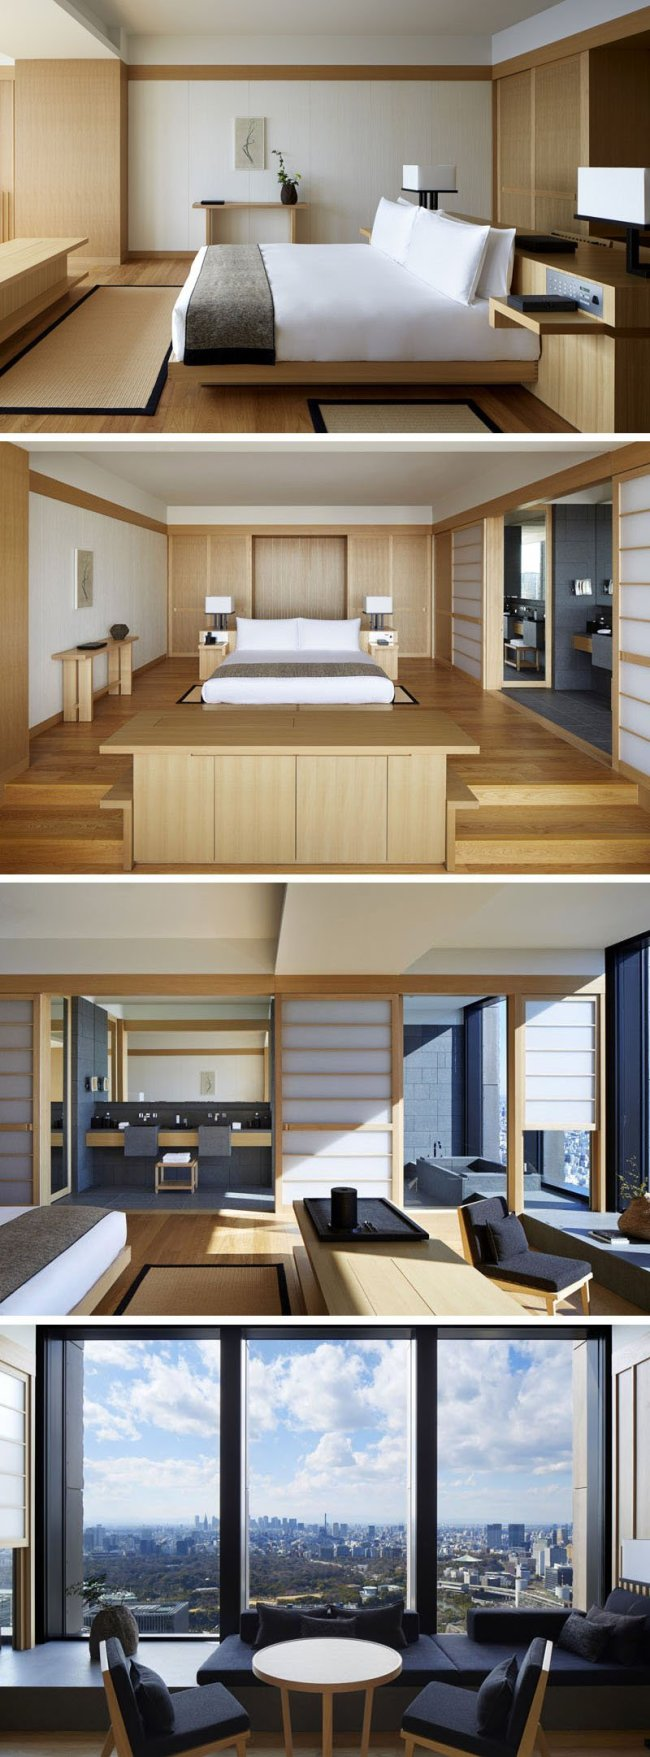 japanese interior of bedroom decor